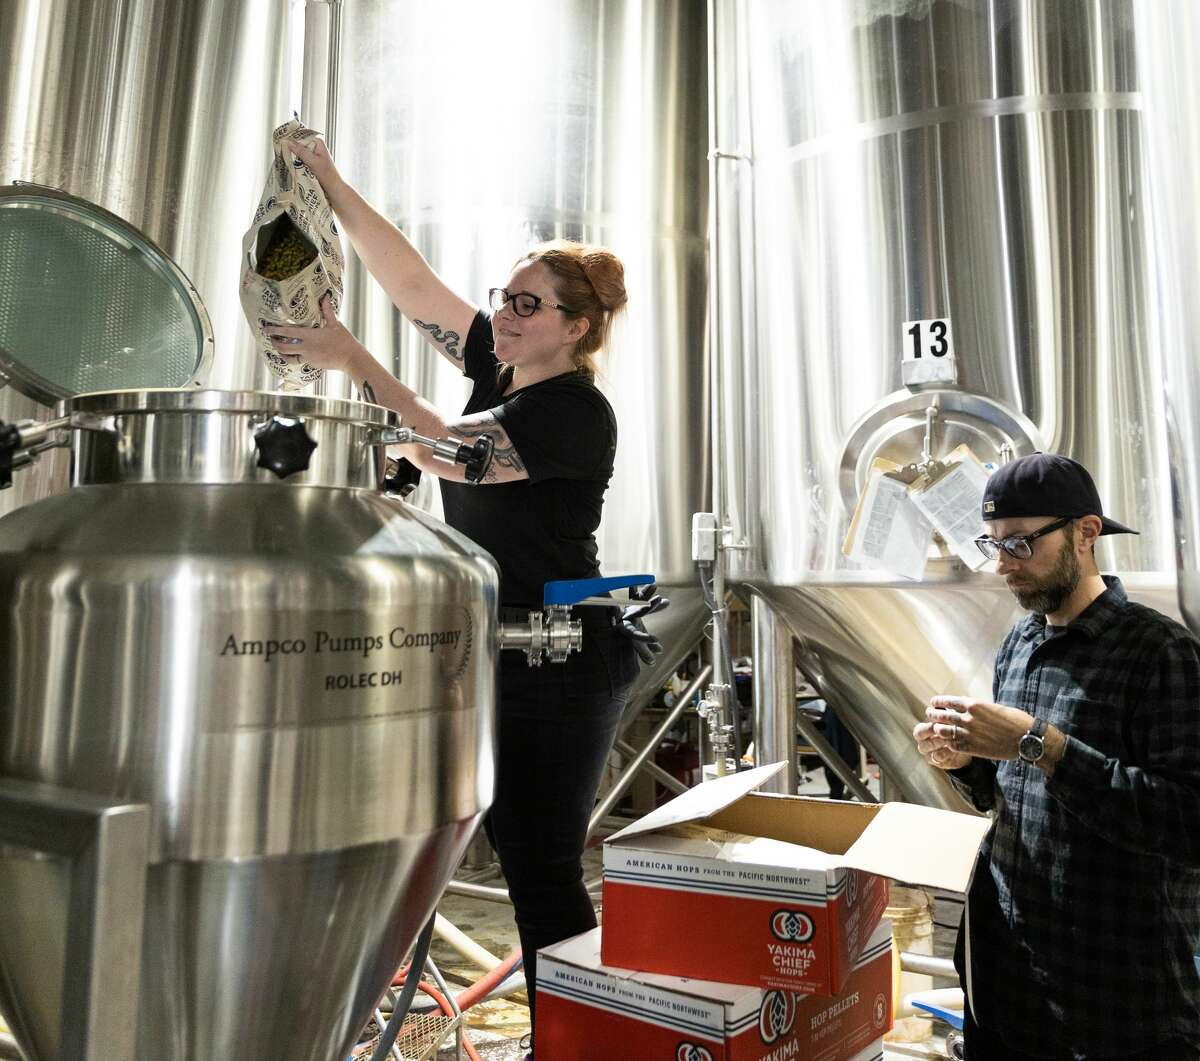 """Sloop Brewing Company's diversity and inclusion internship is a pioneering training program in the white, male-dominated craft beer industry. Its newest intern, who is gay, appreciates its impact. """"You can walk in and go ... 'I belong here,'"""" said Shanna Bowman. """"That's one of the most wonderful things about this."""""""